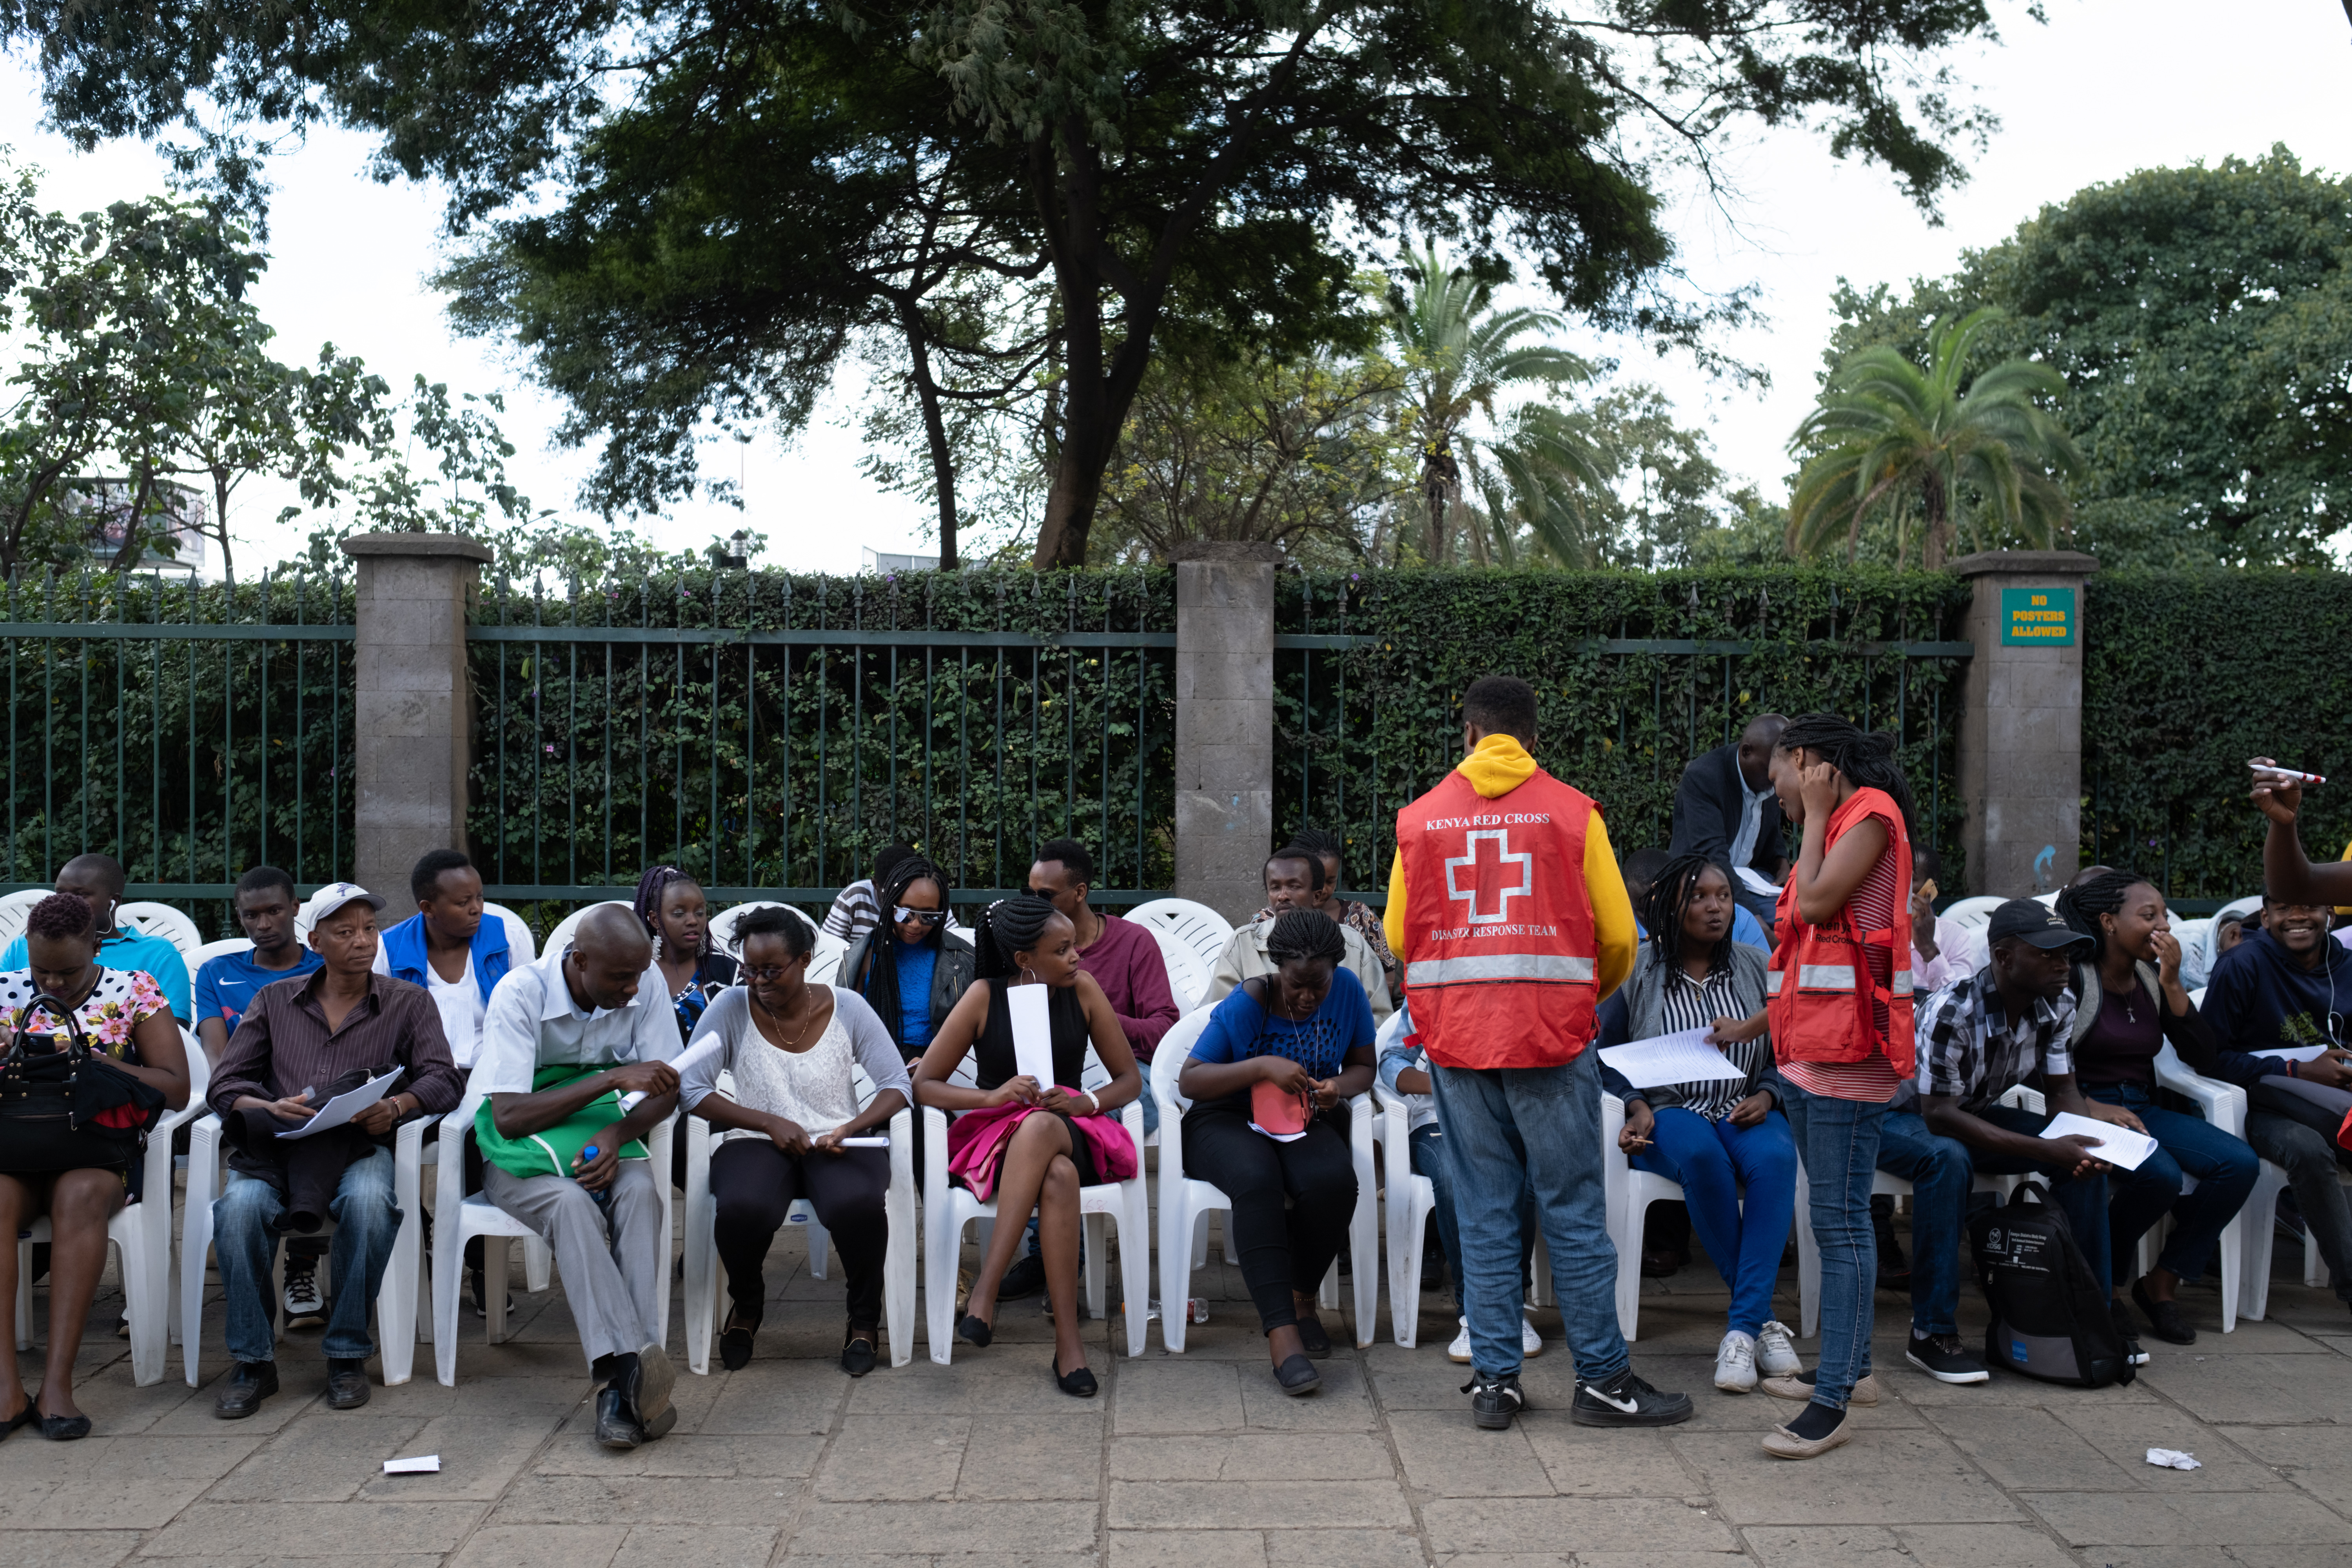 People wait for blood donation at the August 7th Memorial Park, where the 1998 terrorist bomb attack took place at the then United States Embassy, in Nairobi, Jan. 16, 2019, a day after a blast followed by a gun battle that rocked an upmarket hotel c...